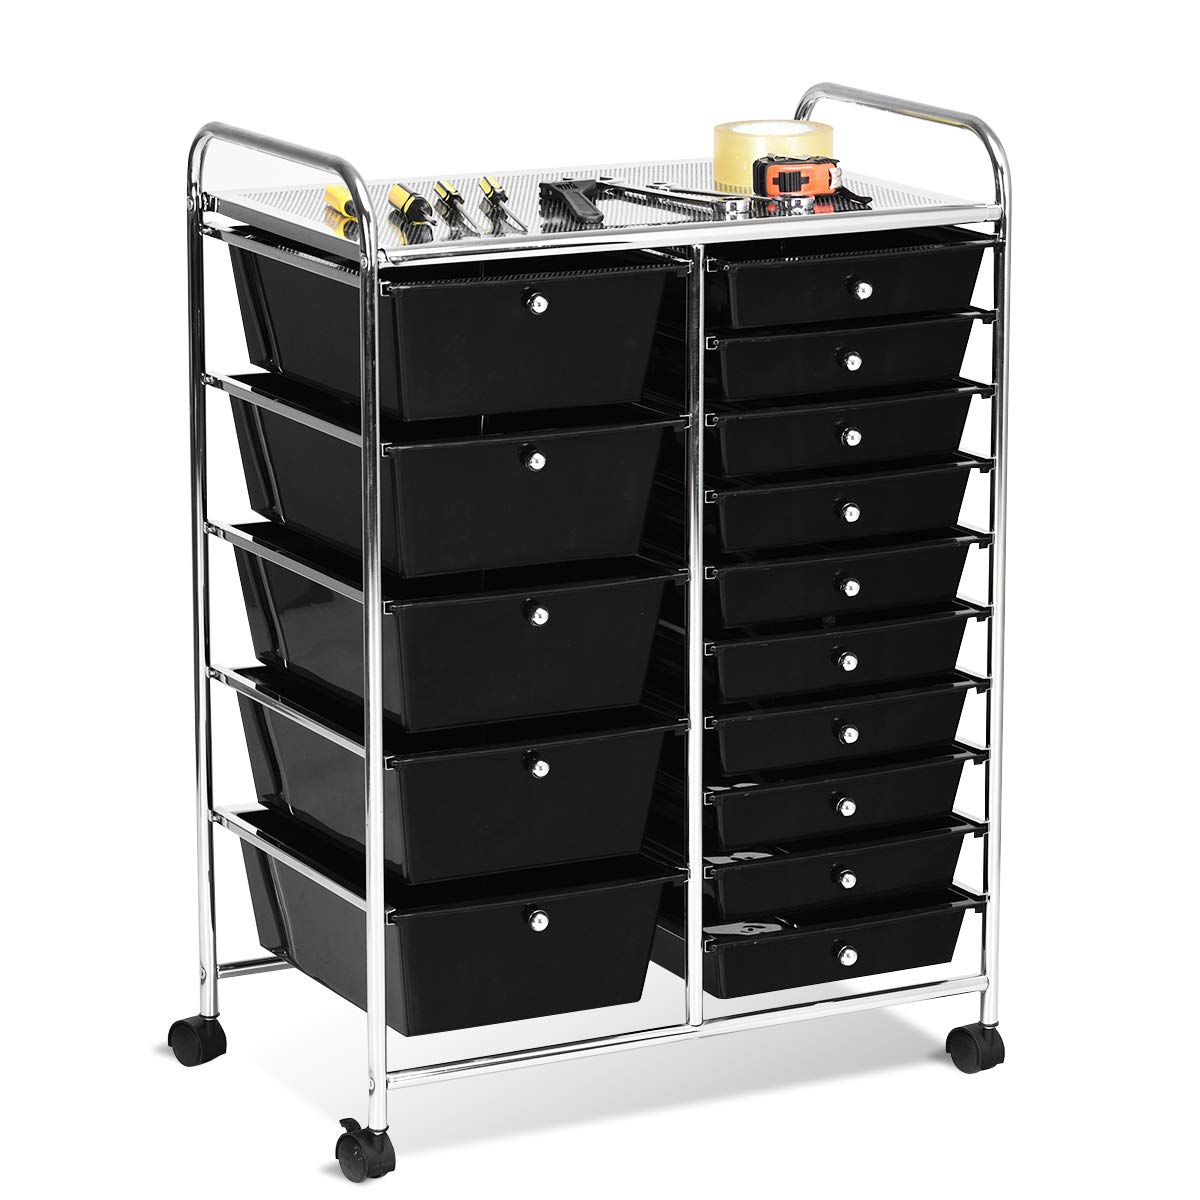 Giantex 15 Drawer Rolling Storage Cart Tools Scrapbook Paper Office School Organizer, Black by Giantex